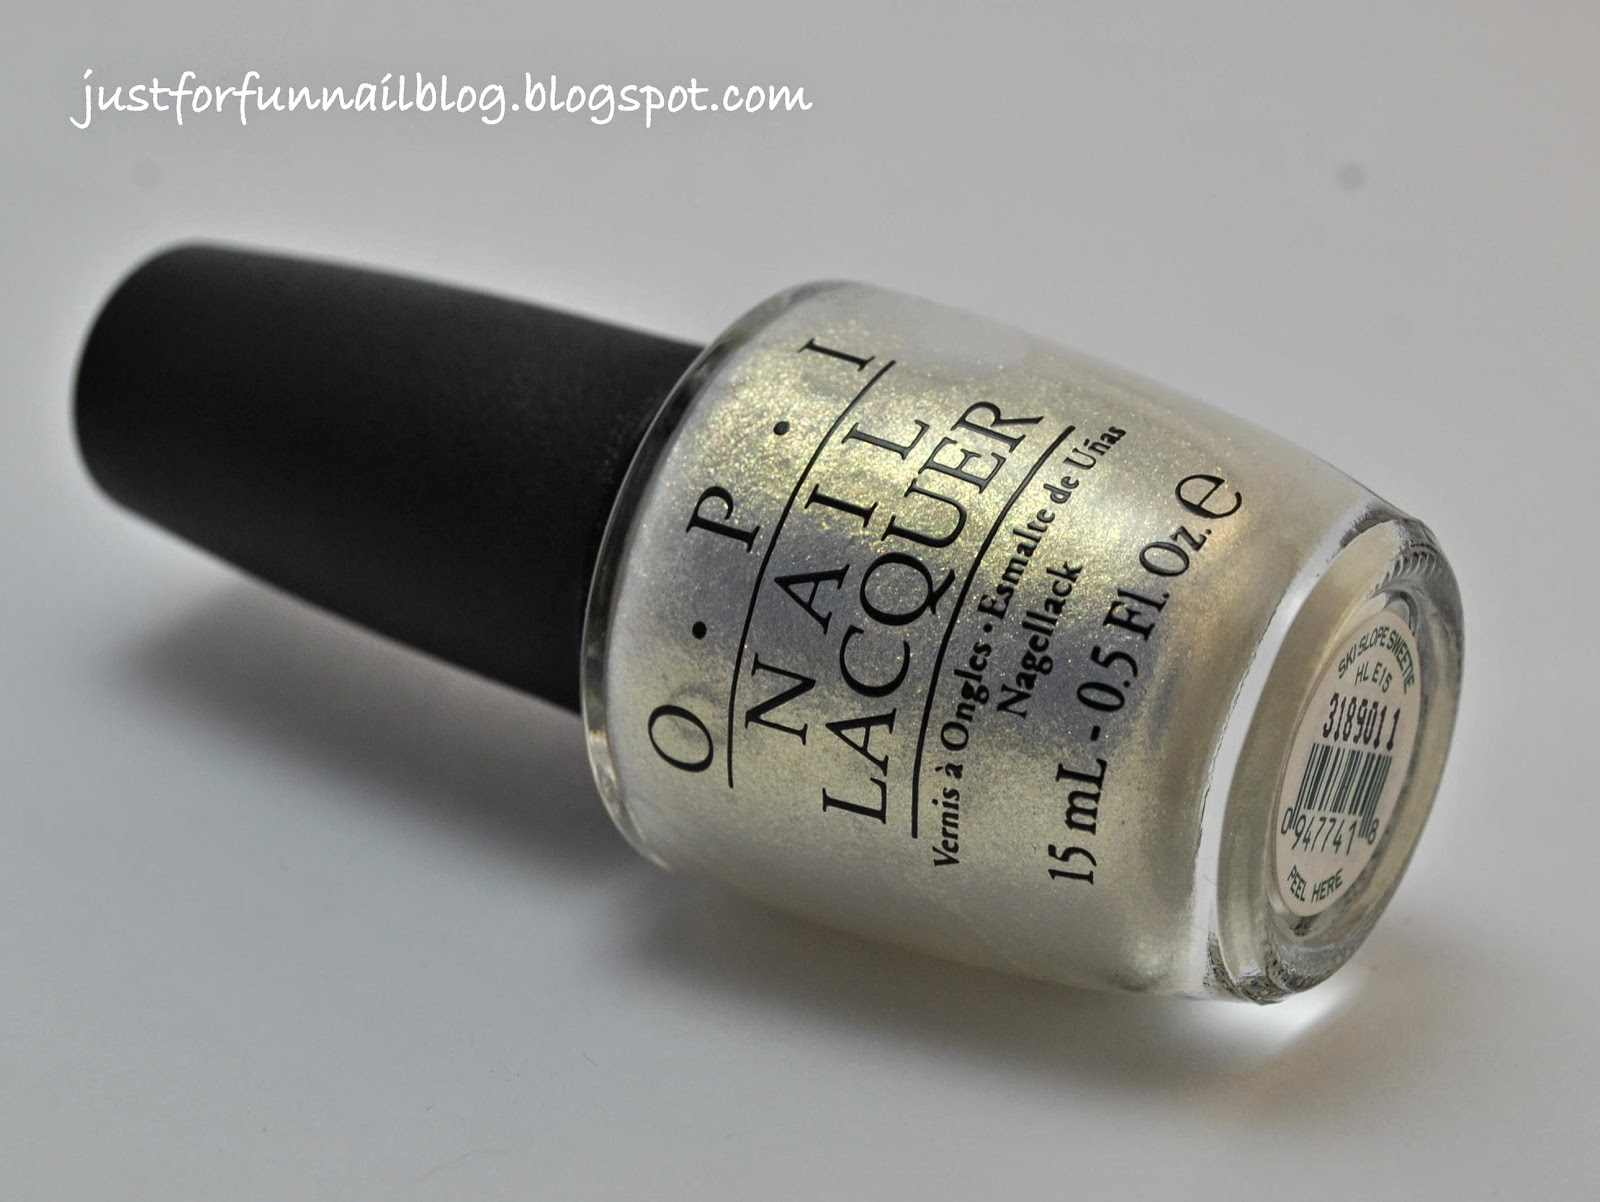 OPI - Ski Slope Sweetie